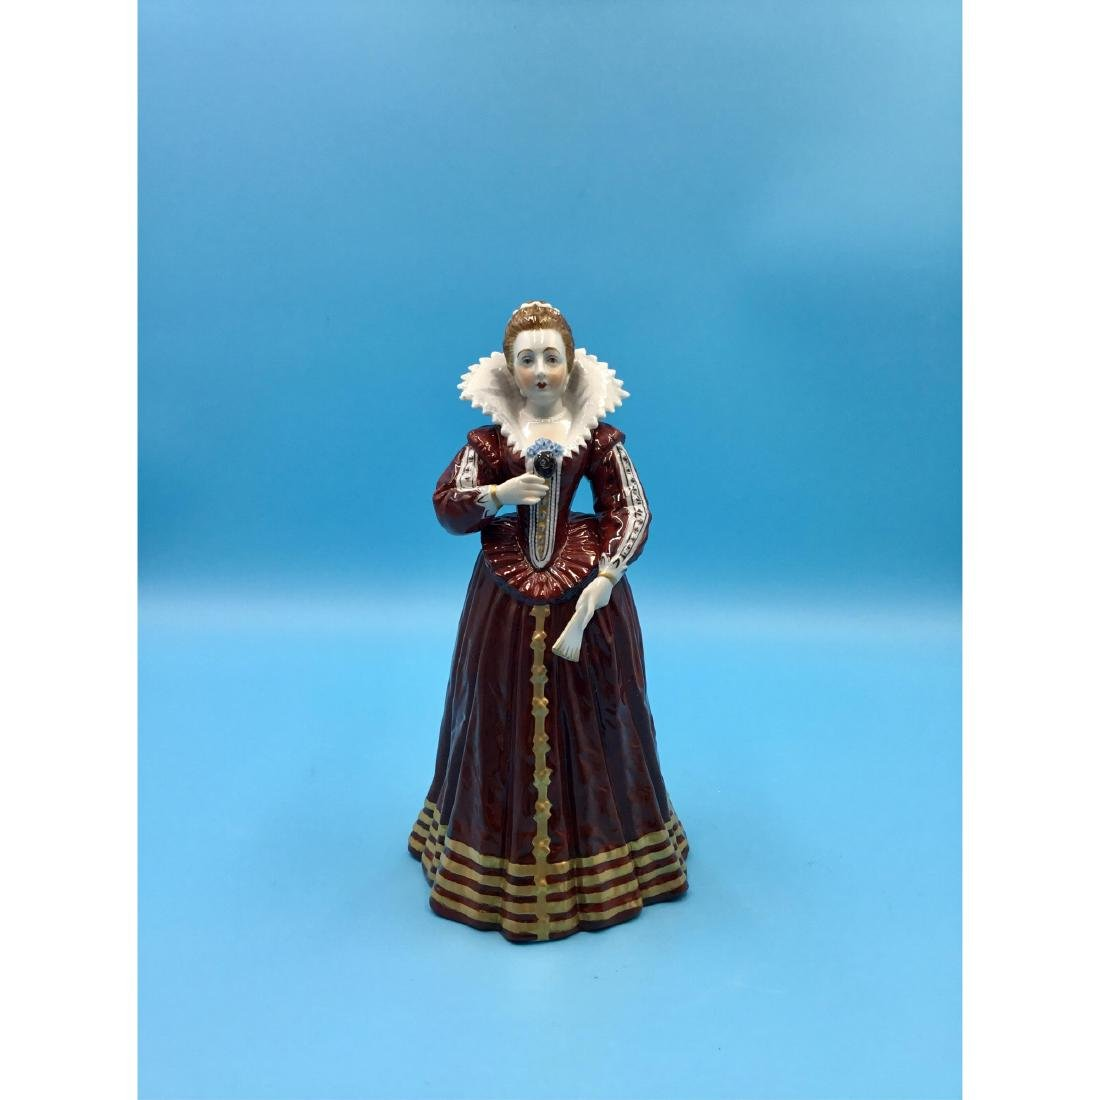 SEVRES 19THC FRENCH PORCELAIN FIGURINE